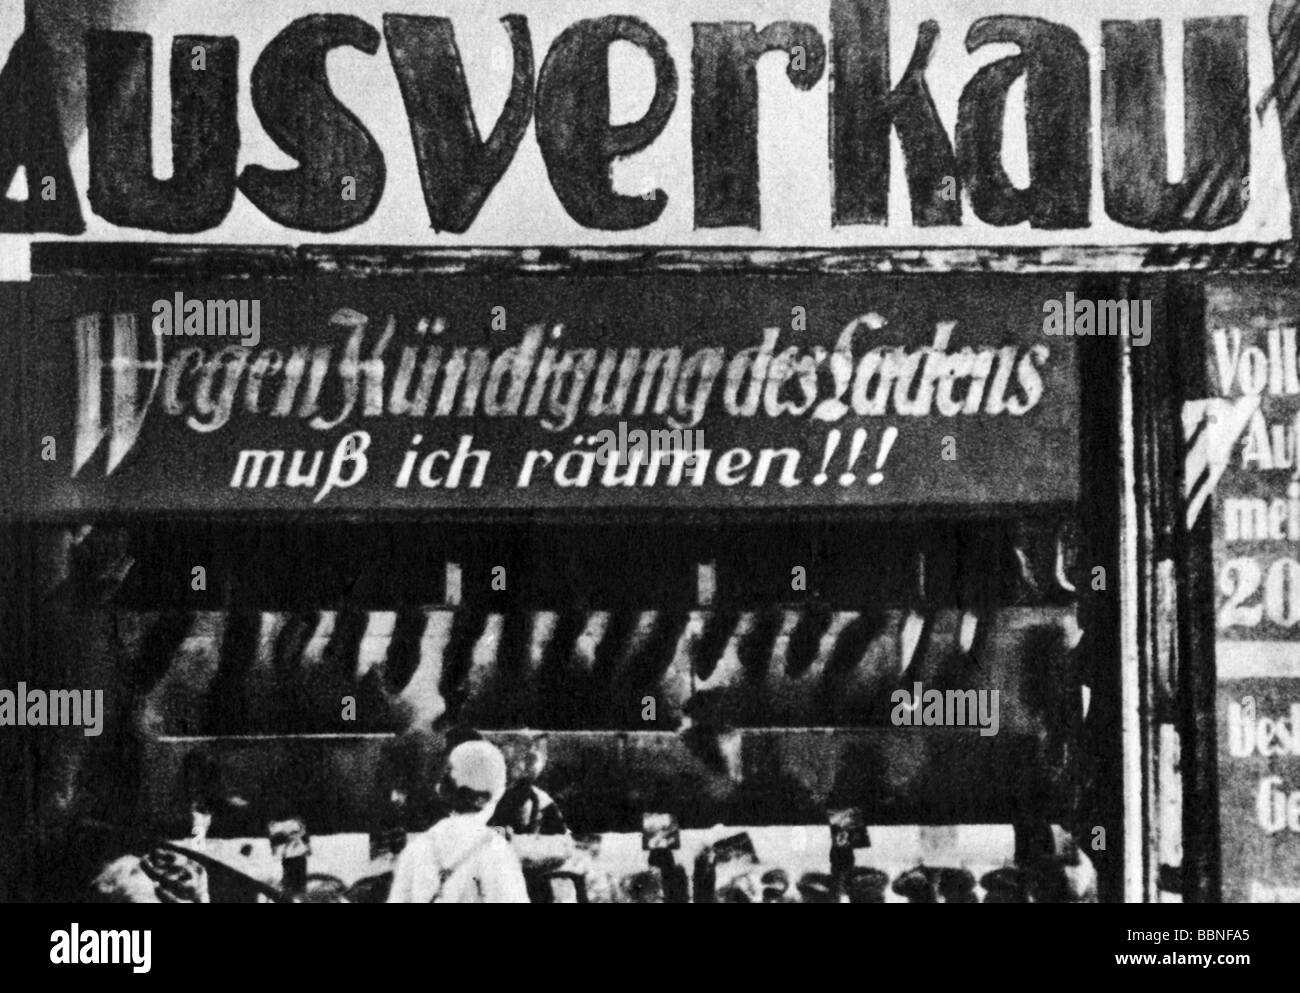 events, Great Depression 1929 - 1933, shop selling out because of termination of the rental agreement, Germany, - Stock Image